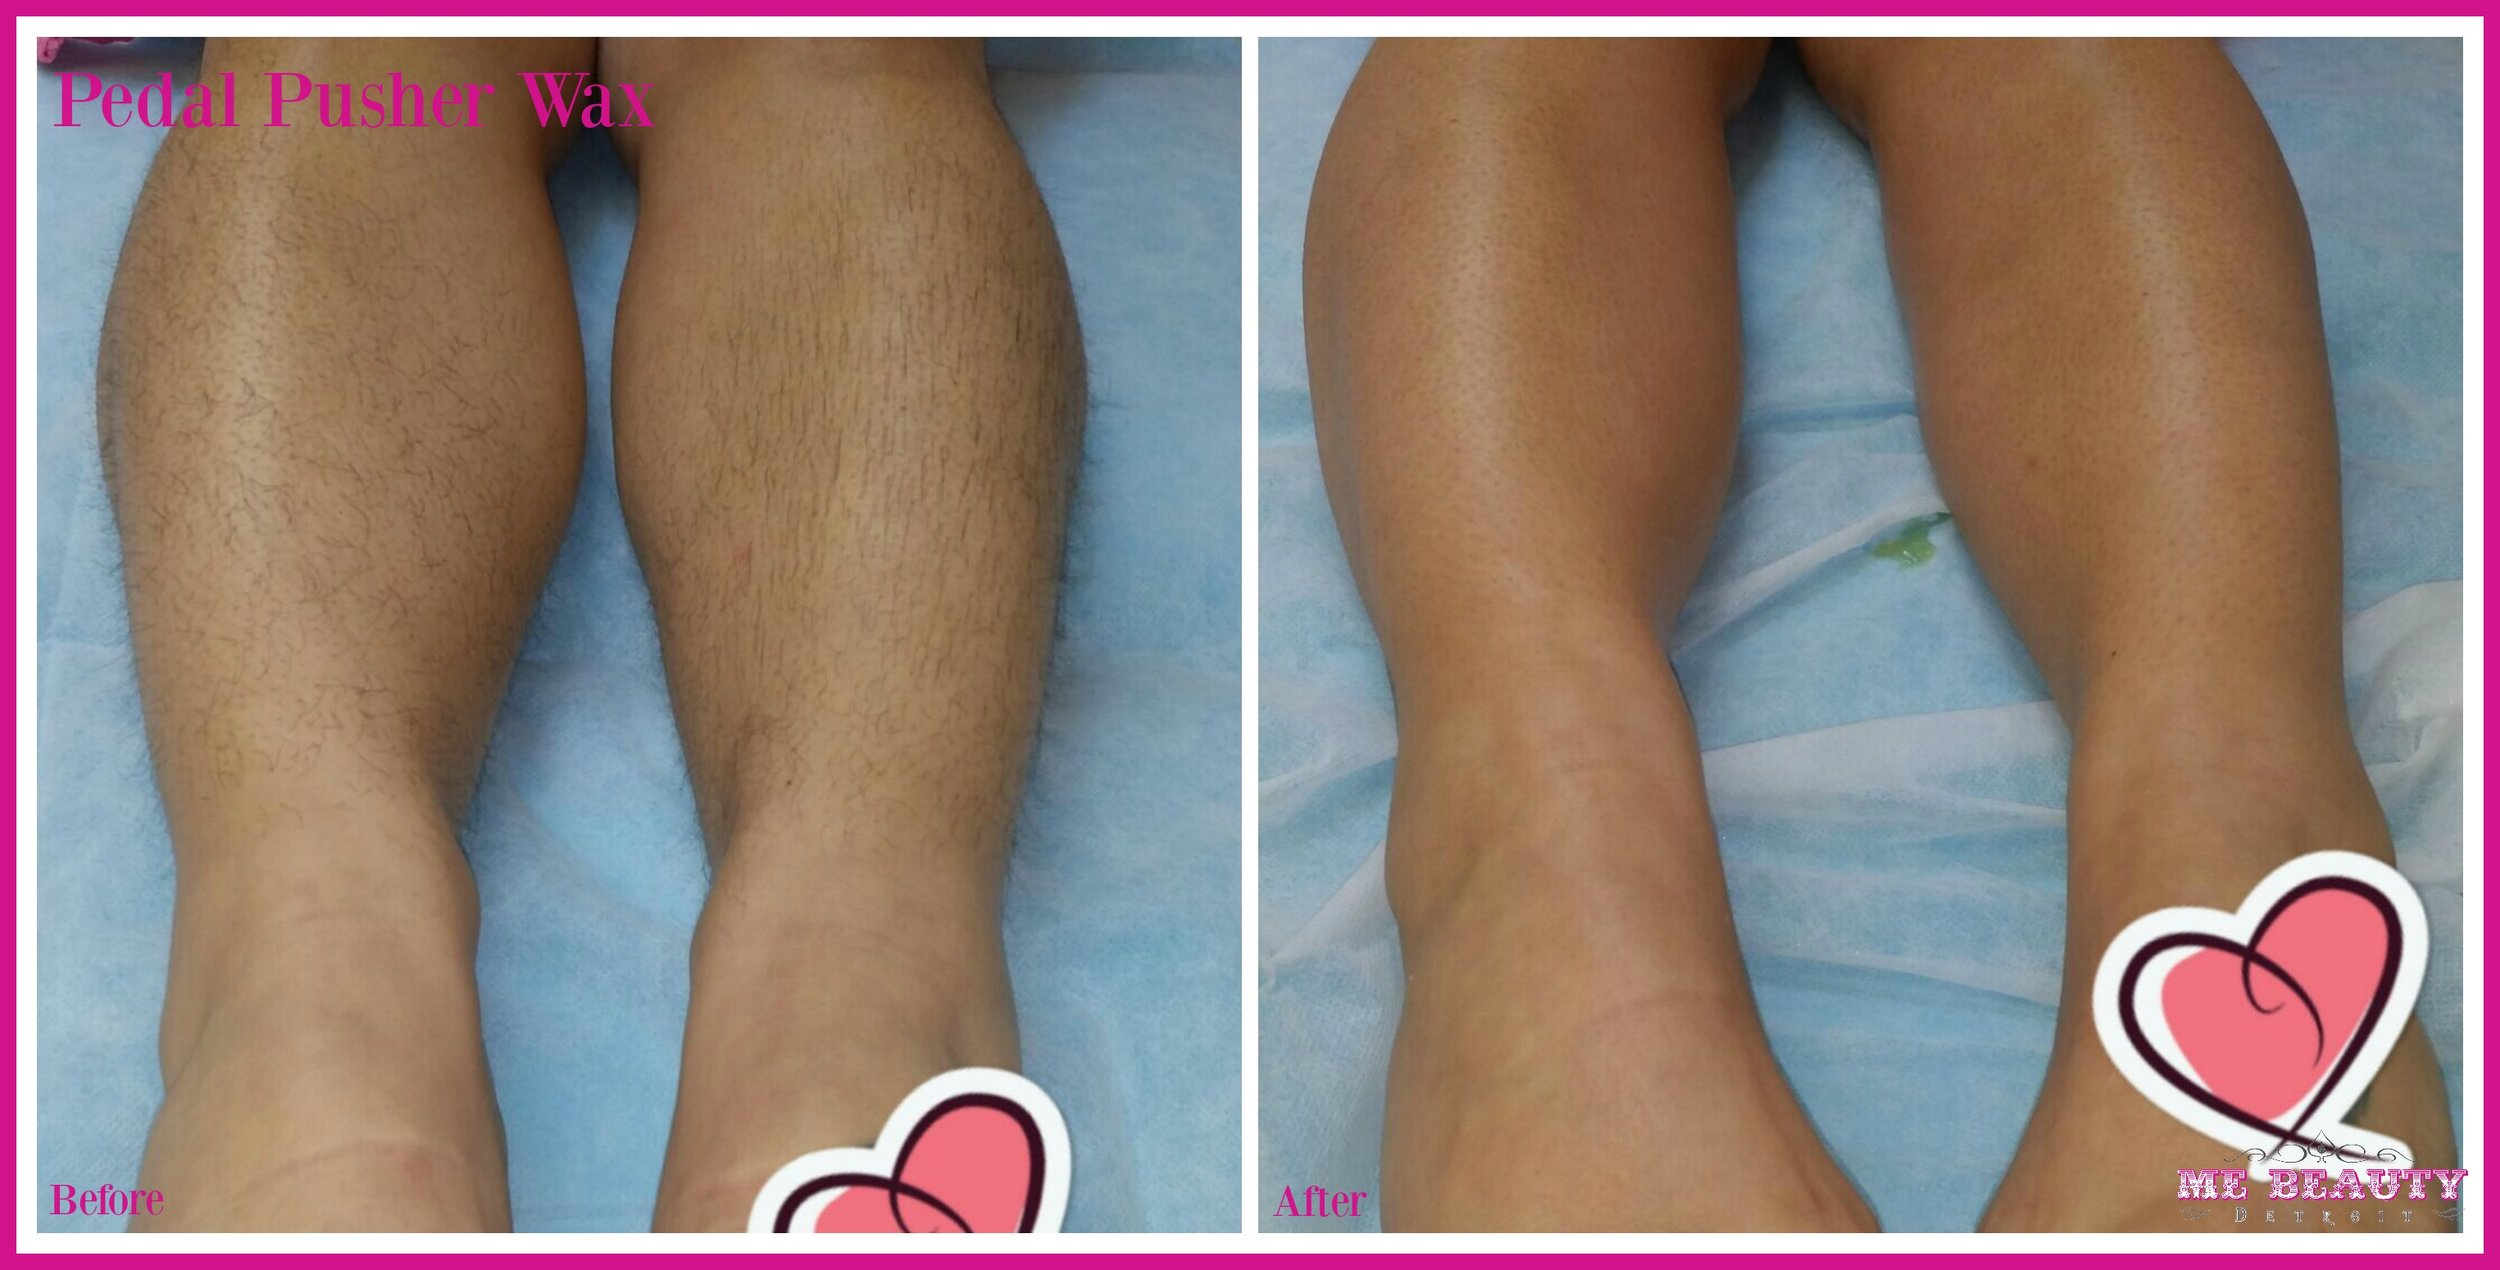 Italian American Female 20s had laser done for two years for to reduce the amount of hair growth.  Now waxes monthly for hair removal   Photo Credit  ME Beauty LLC circa March 2015